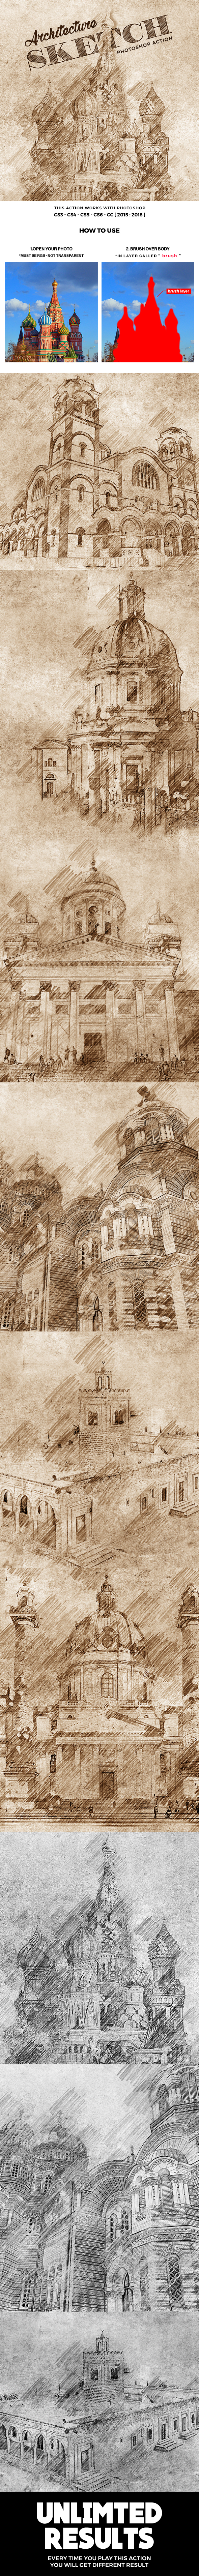 Architecture Sketch 2 Photoshop Action - Photo Effects Actions